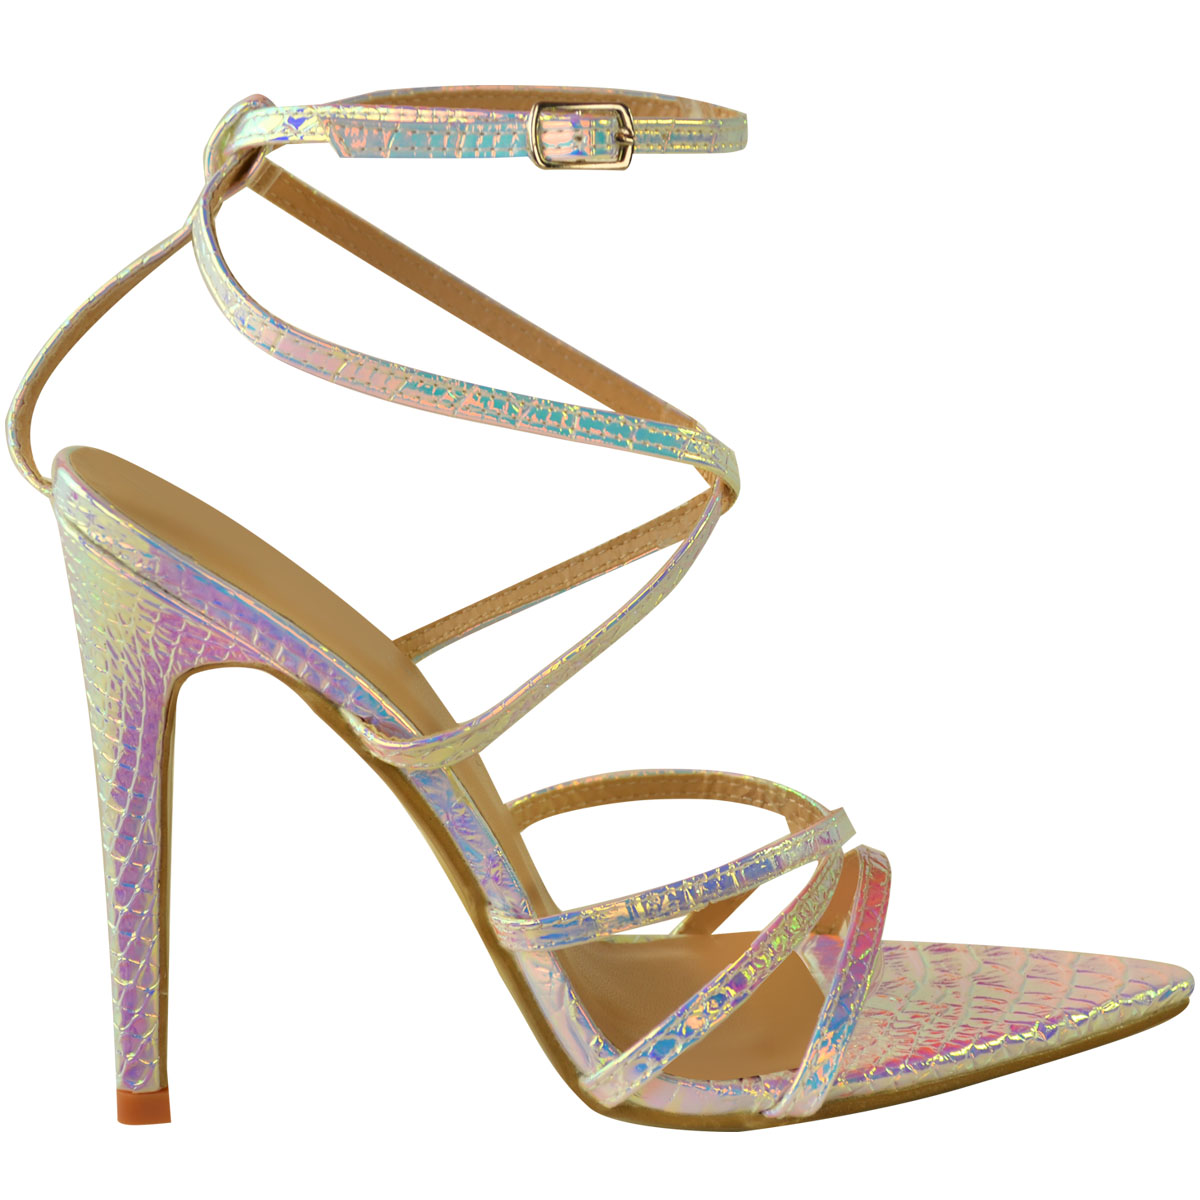 Womens-Silver-Hologram-Perspex-High-Heel-Party-Sandals-Barely-There-Strappy thumbnail 3